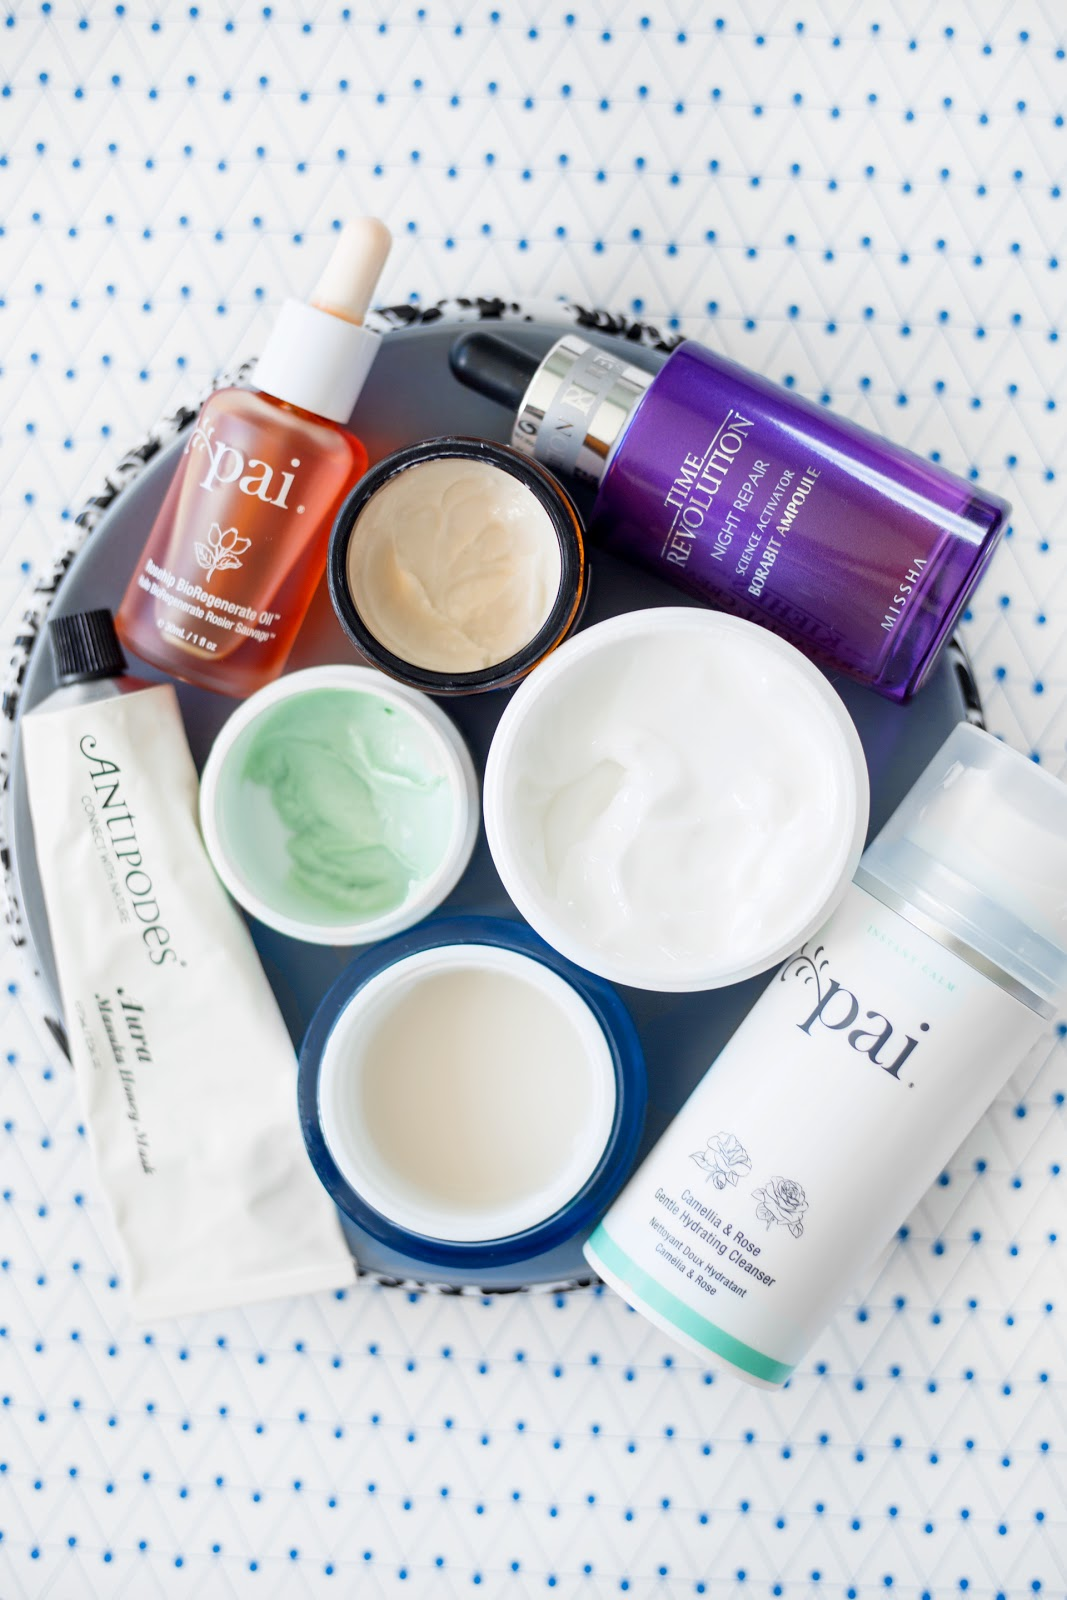 TOP SKINCARE PRODUCTS FOR DRY SKIN